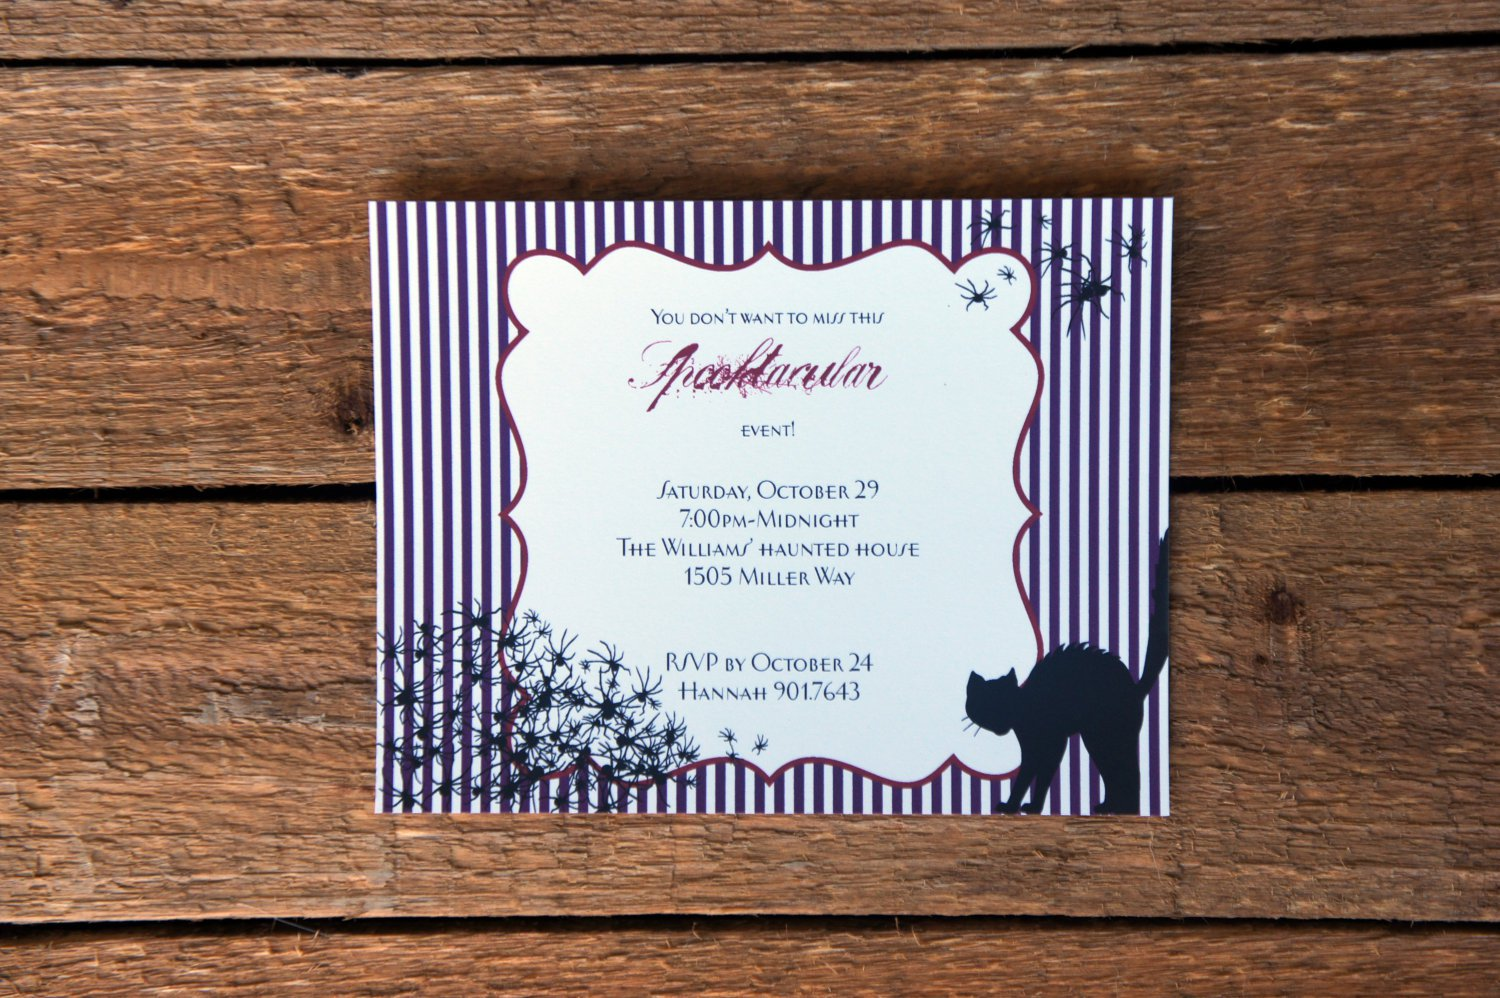 House Party Invitations Wording